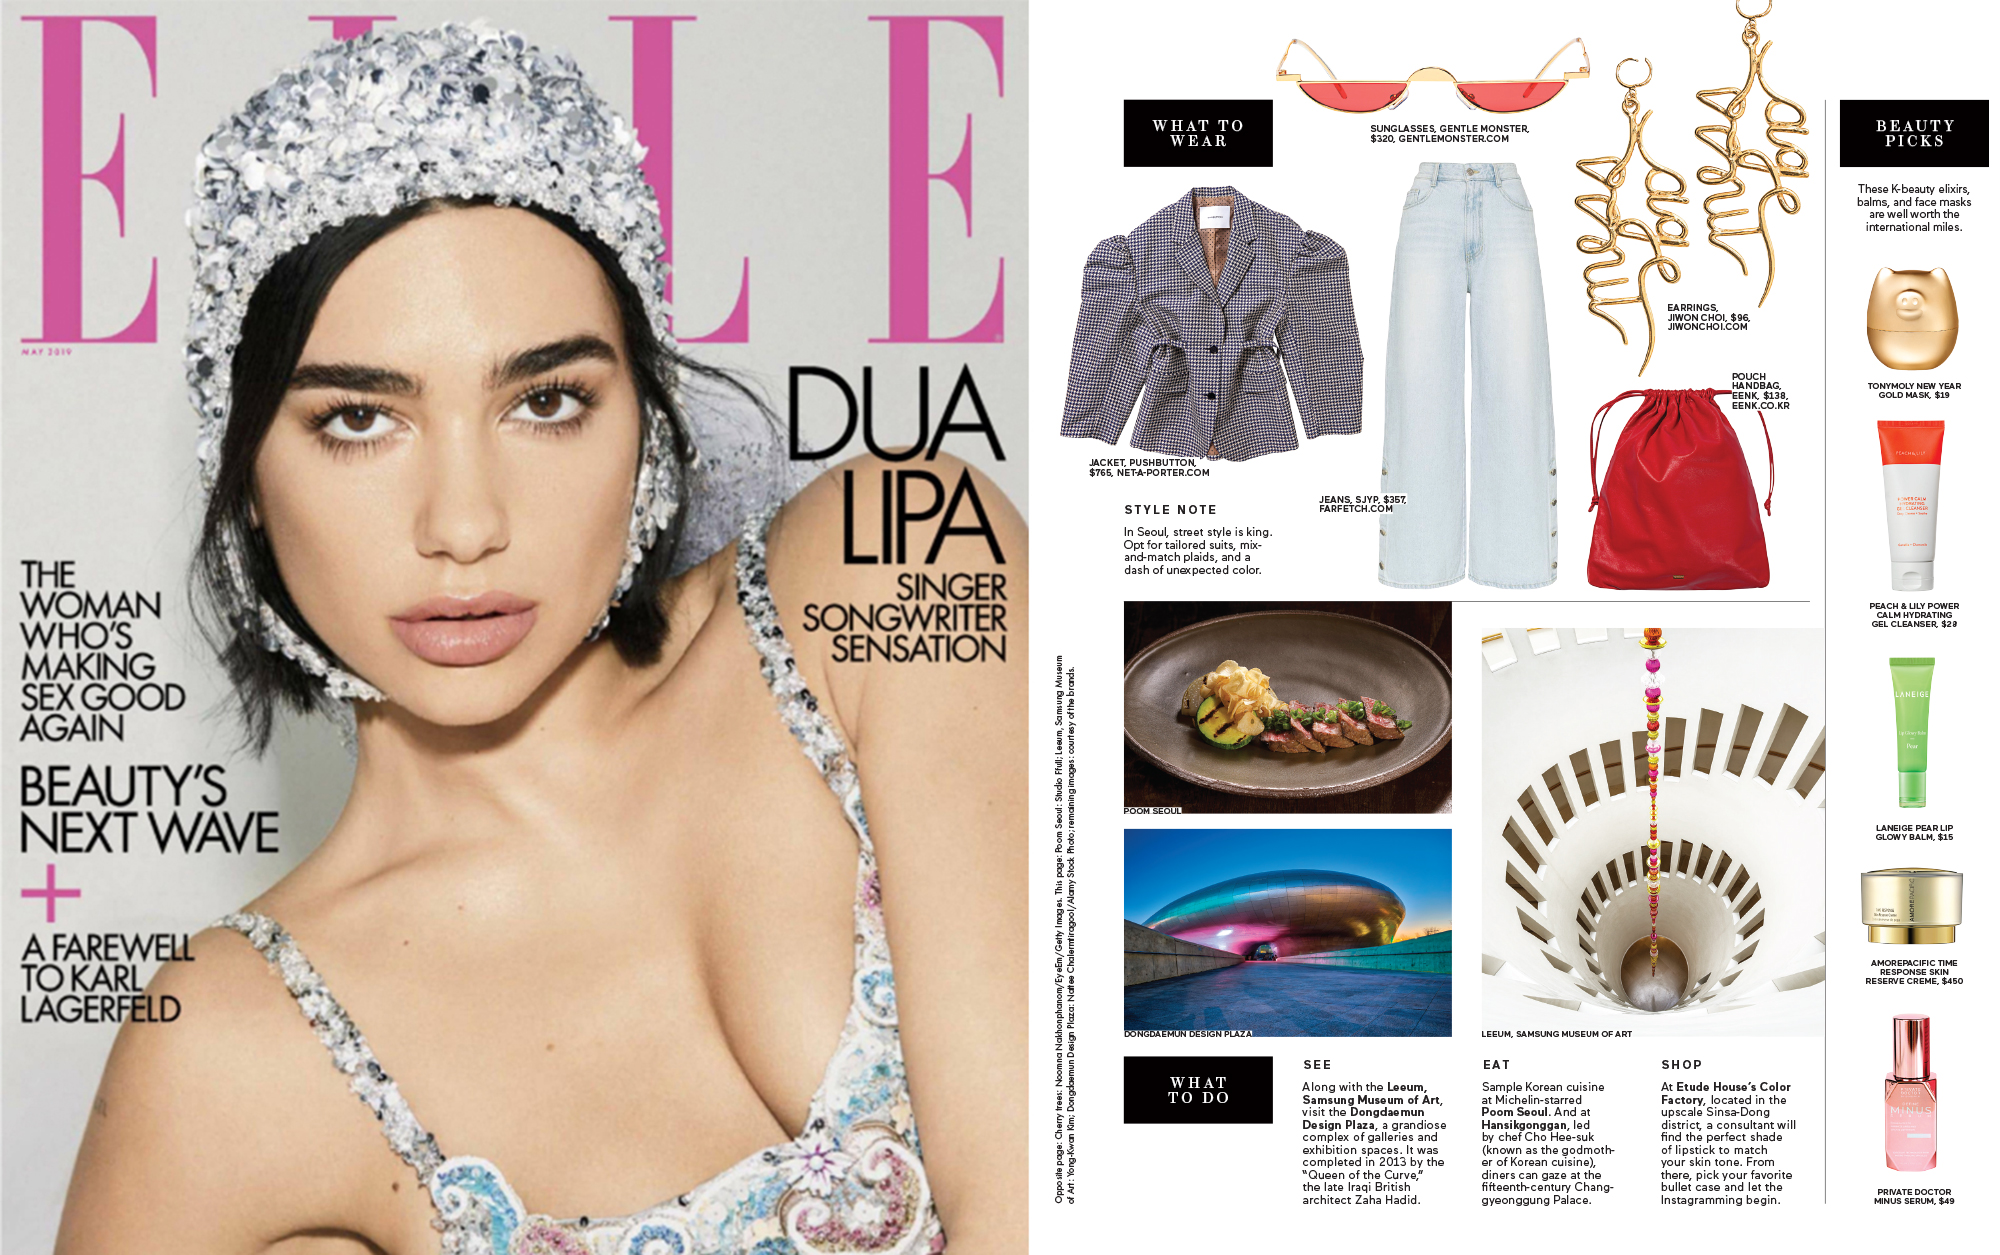 JIWON CHOI JEWELRY ON ELLE MAGAZINE US MAY 2019 ISSUE